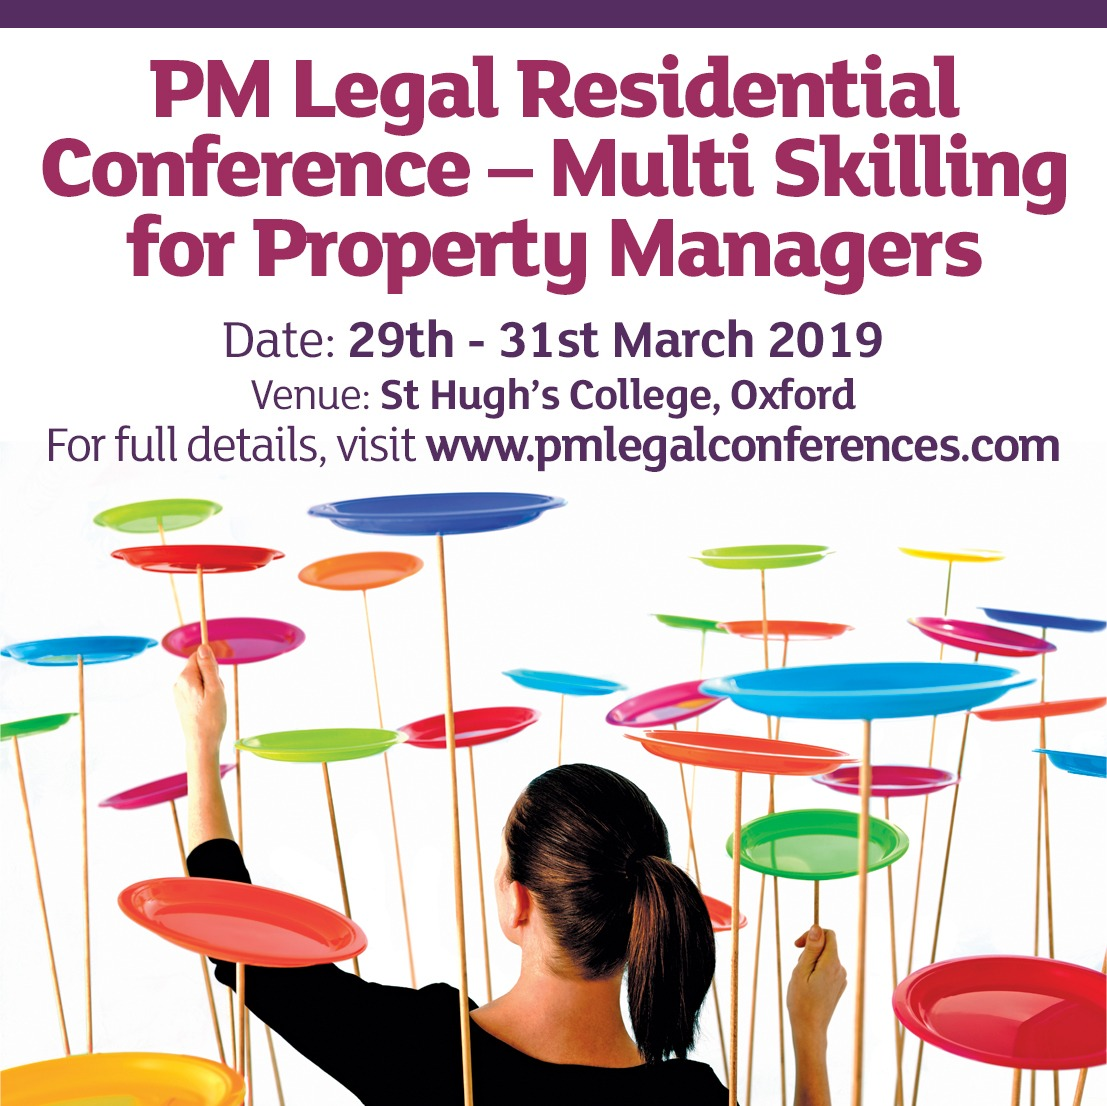 Whitley Stimpson to sponsor PM Legal Services Multi-Skilling for Property Managers conference